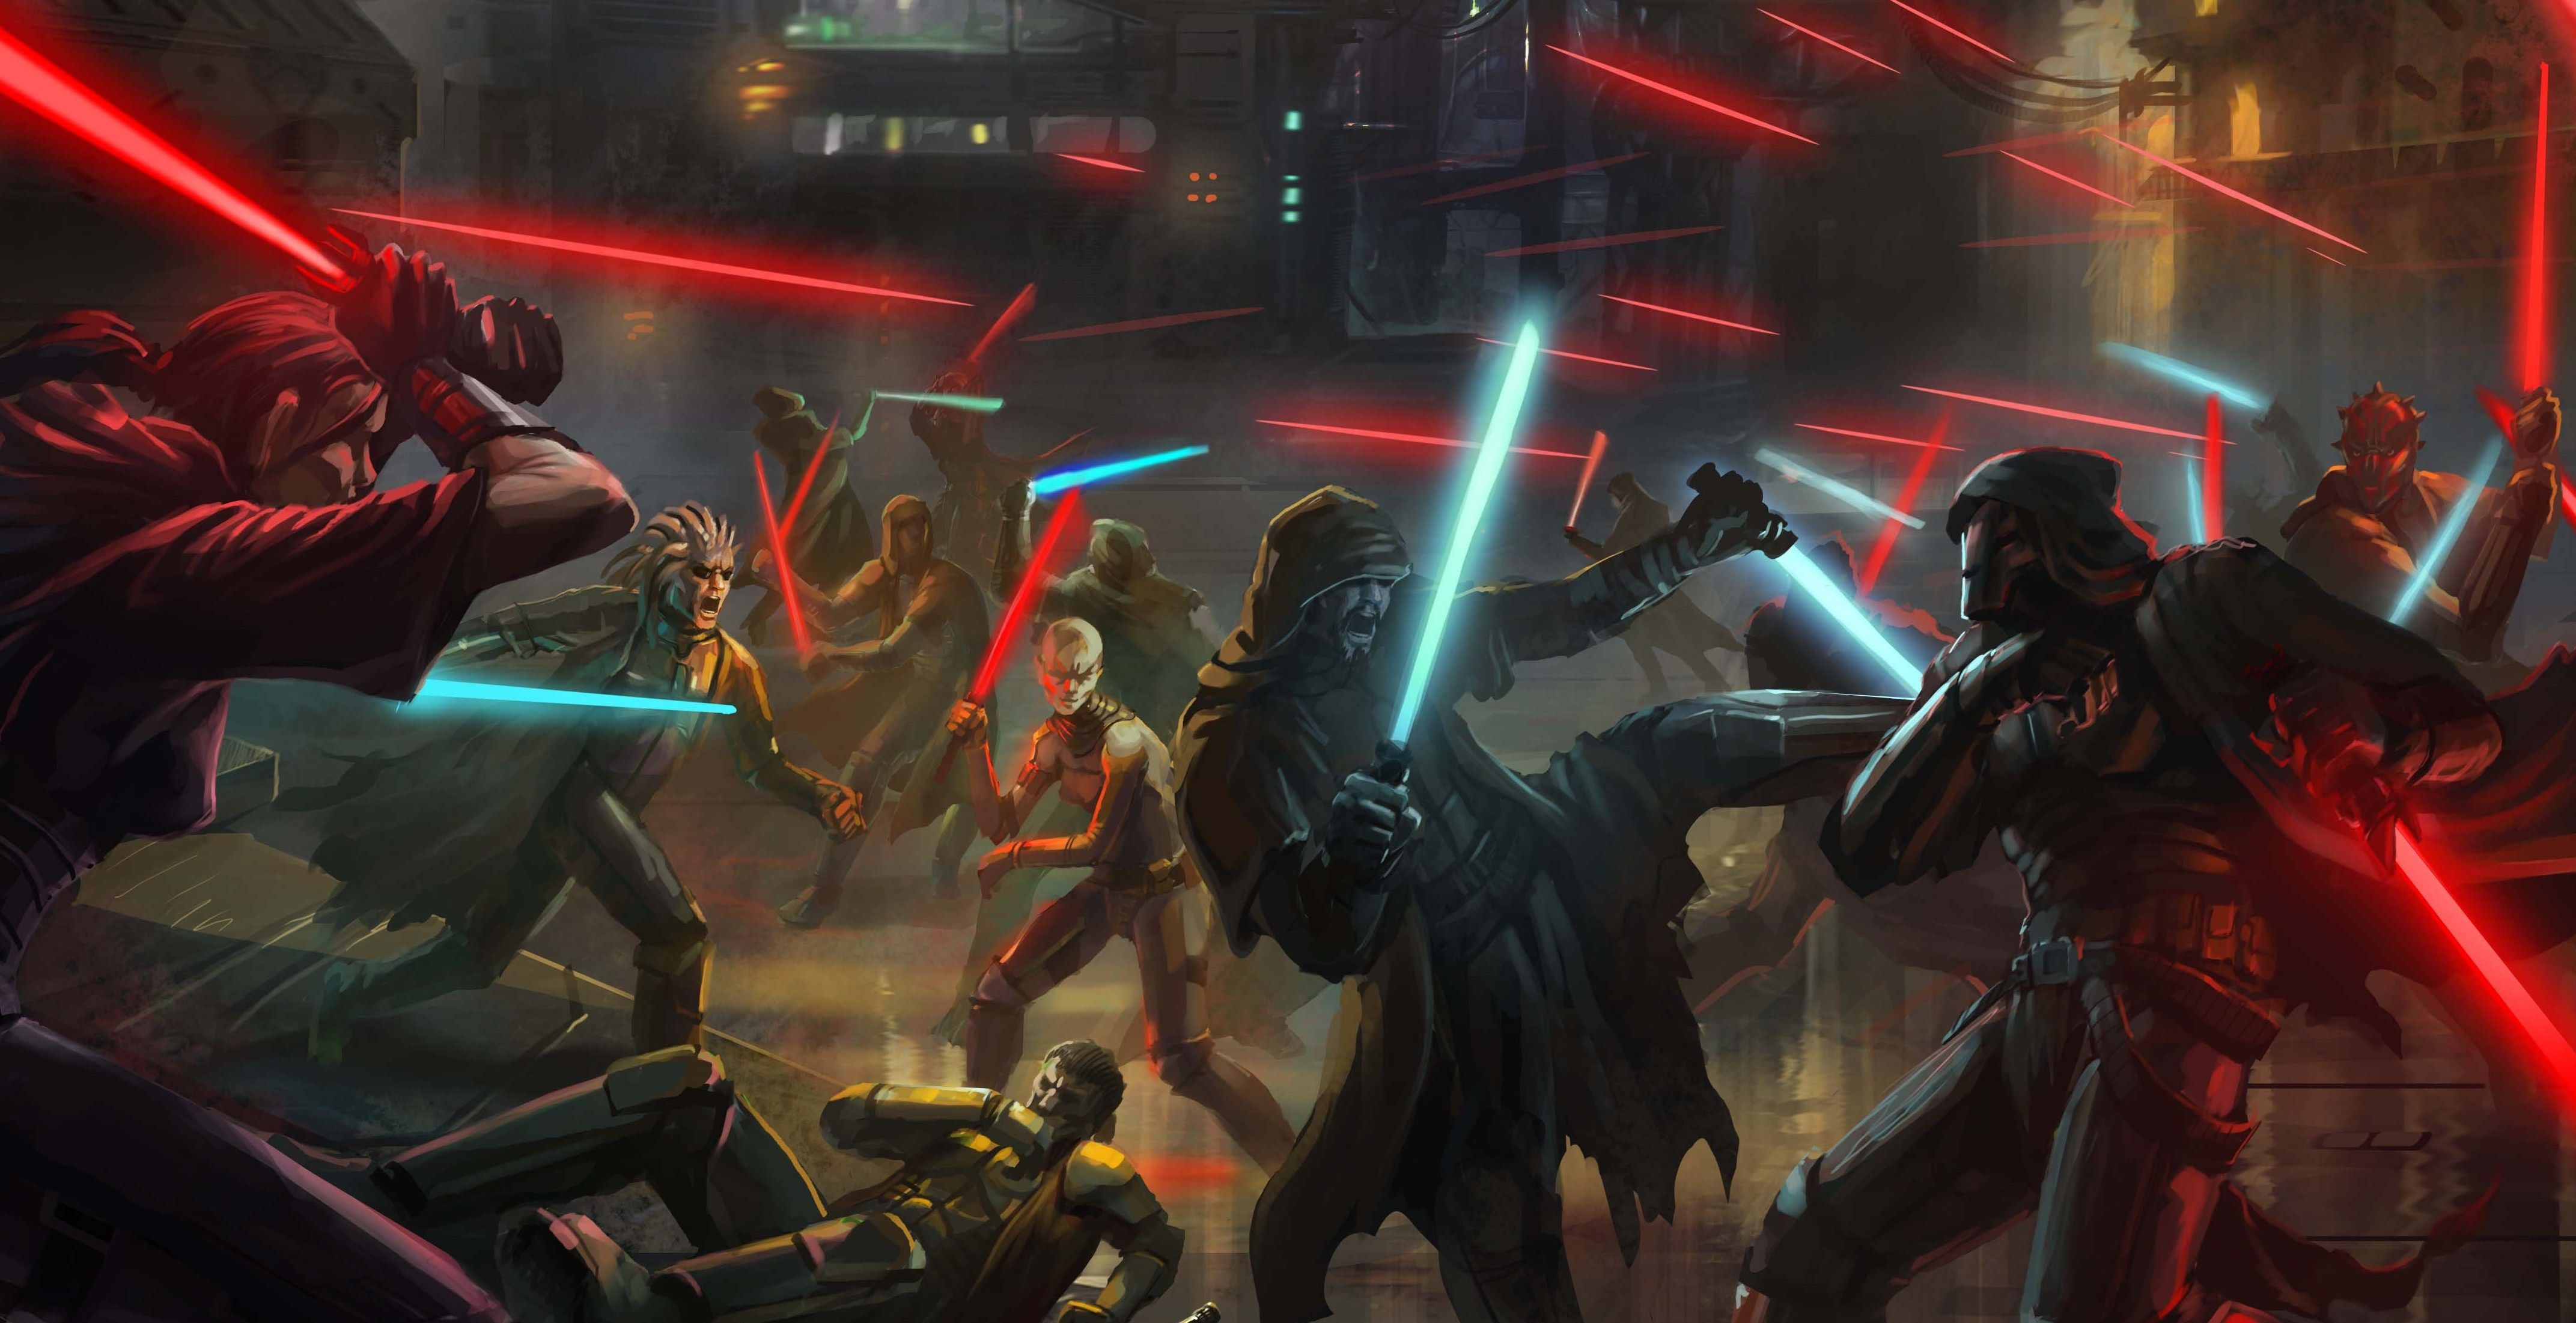 star wars lore, this is artwork from the great galactic war which